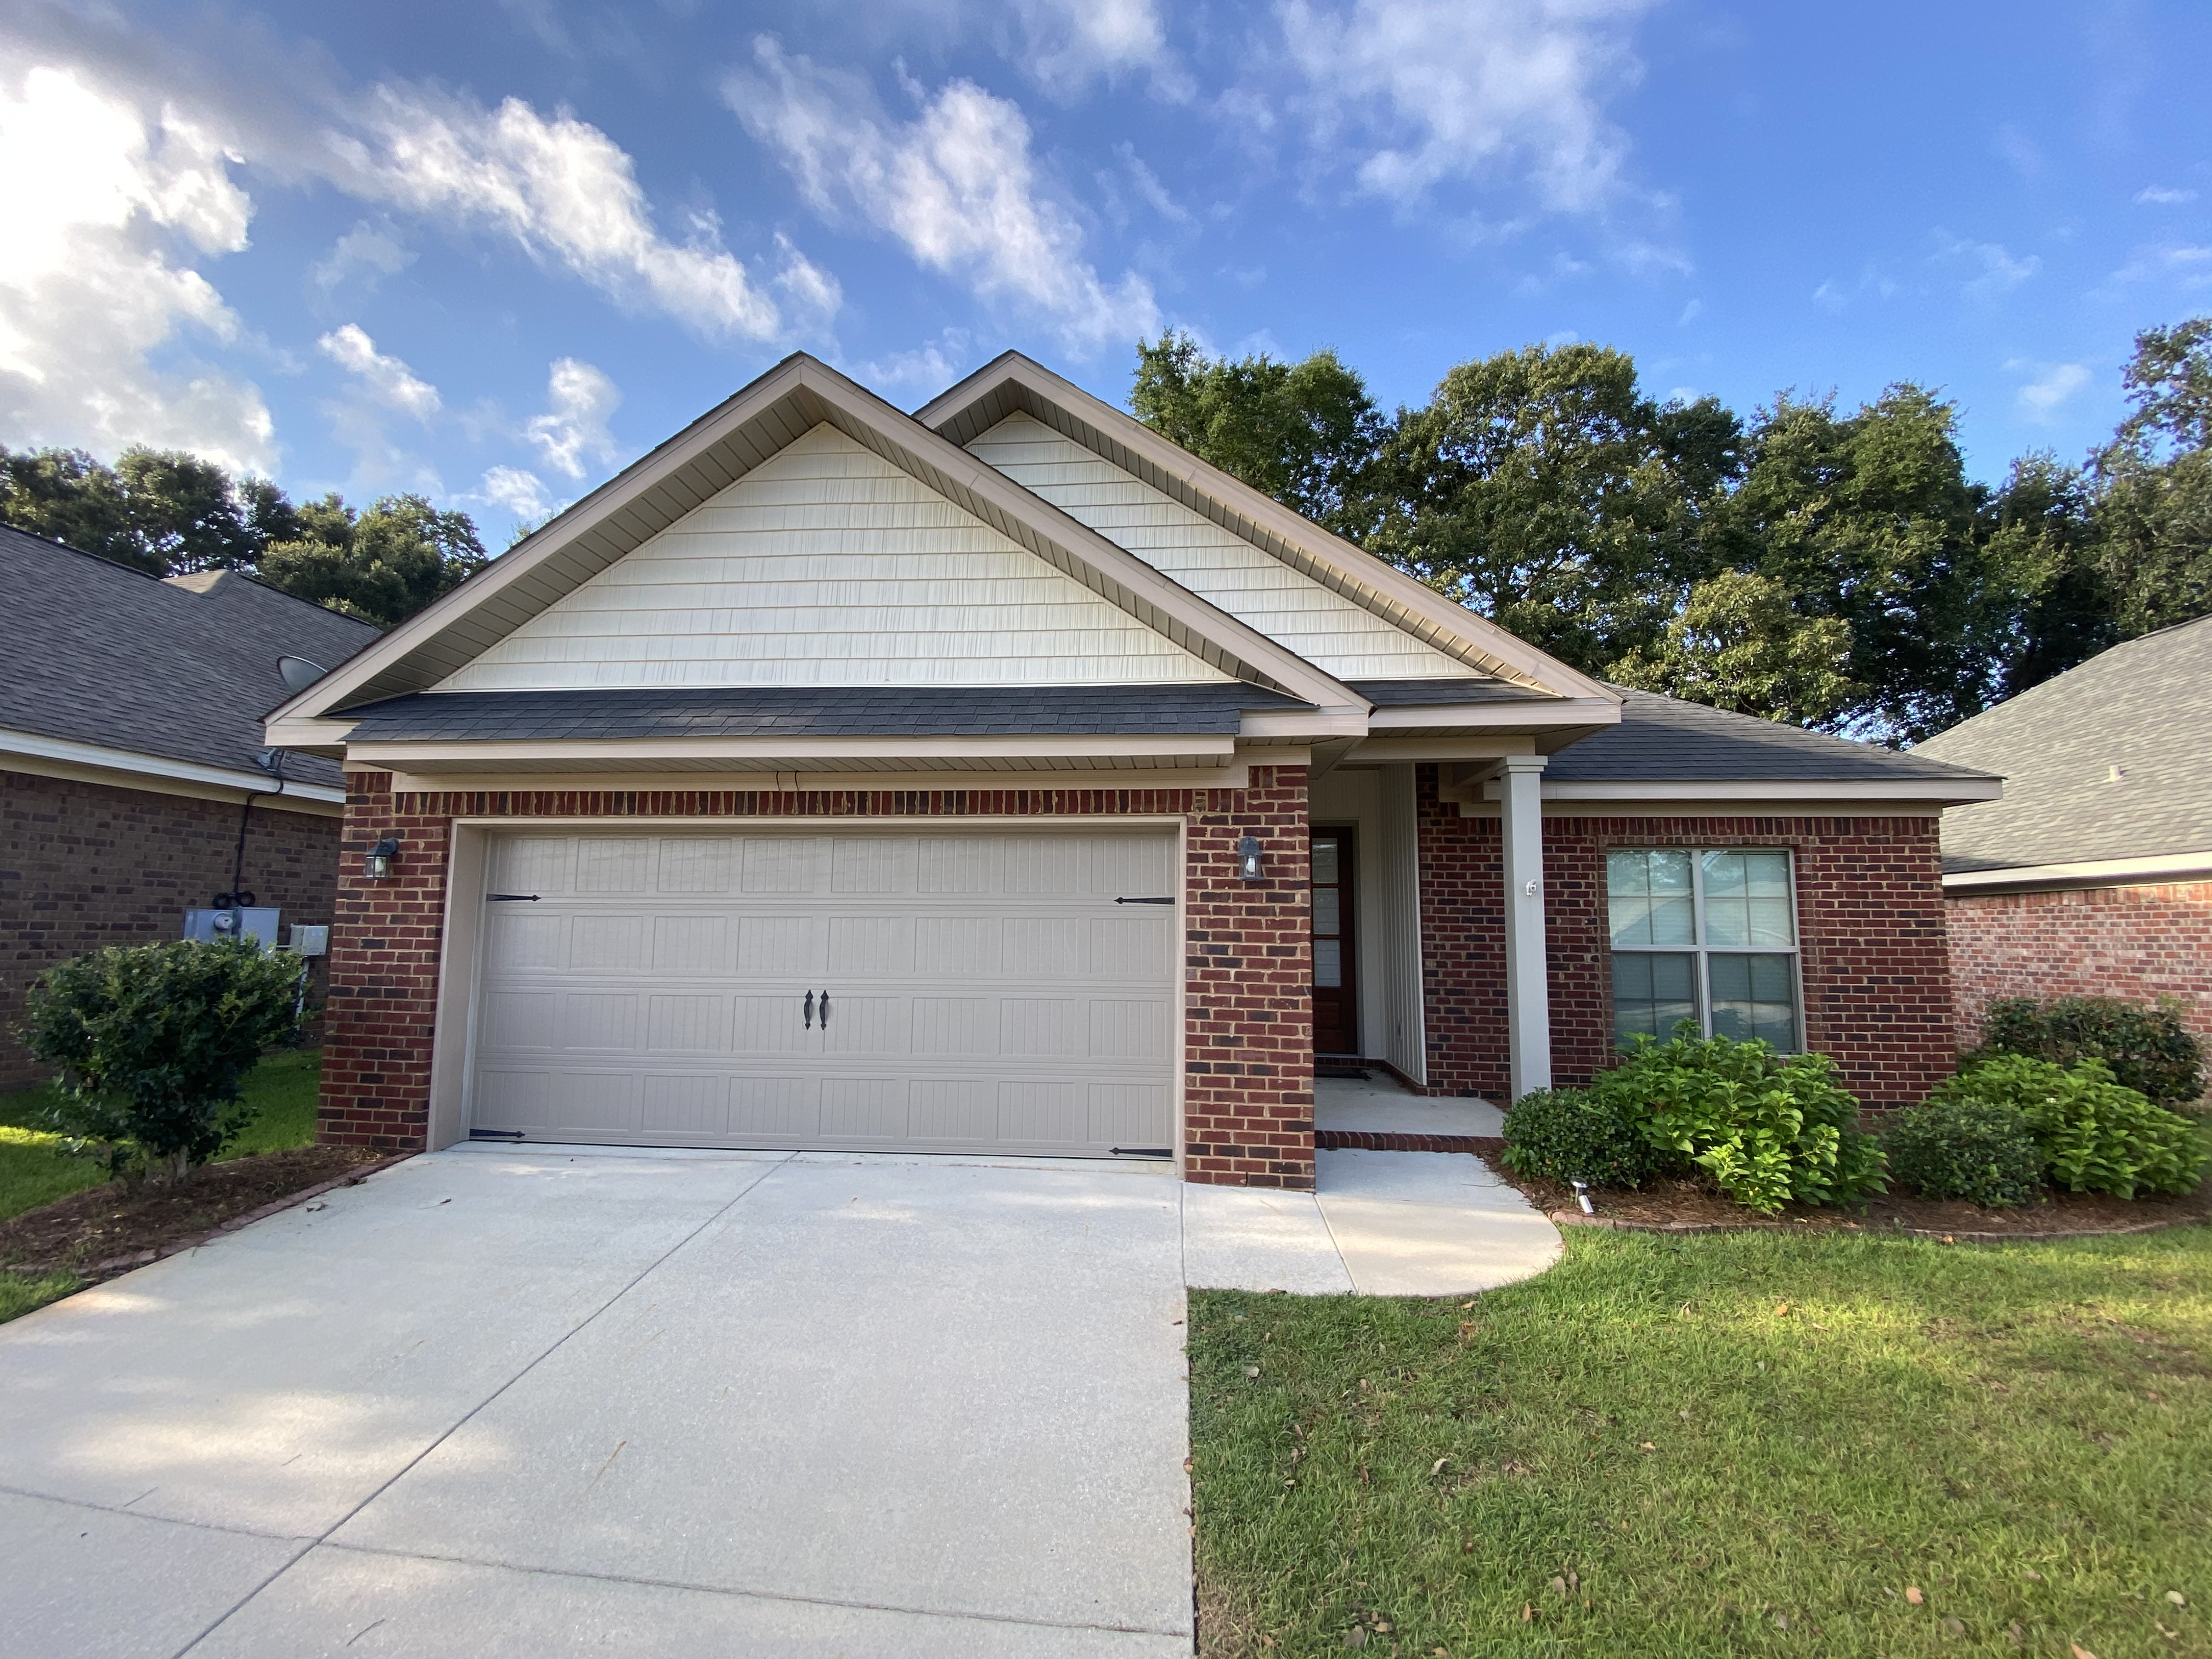 3 BEDROOM / 2 BATH WITH OFFICE AVAILABLE 9/18 IN DAPHNE!!